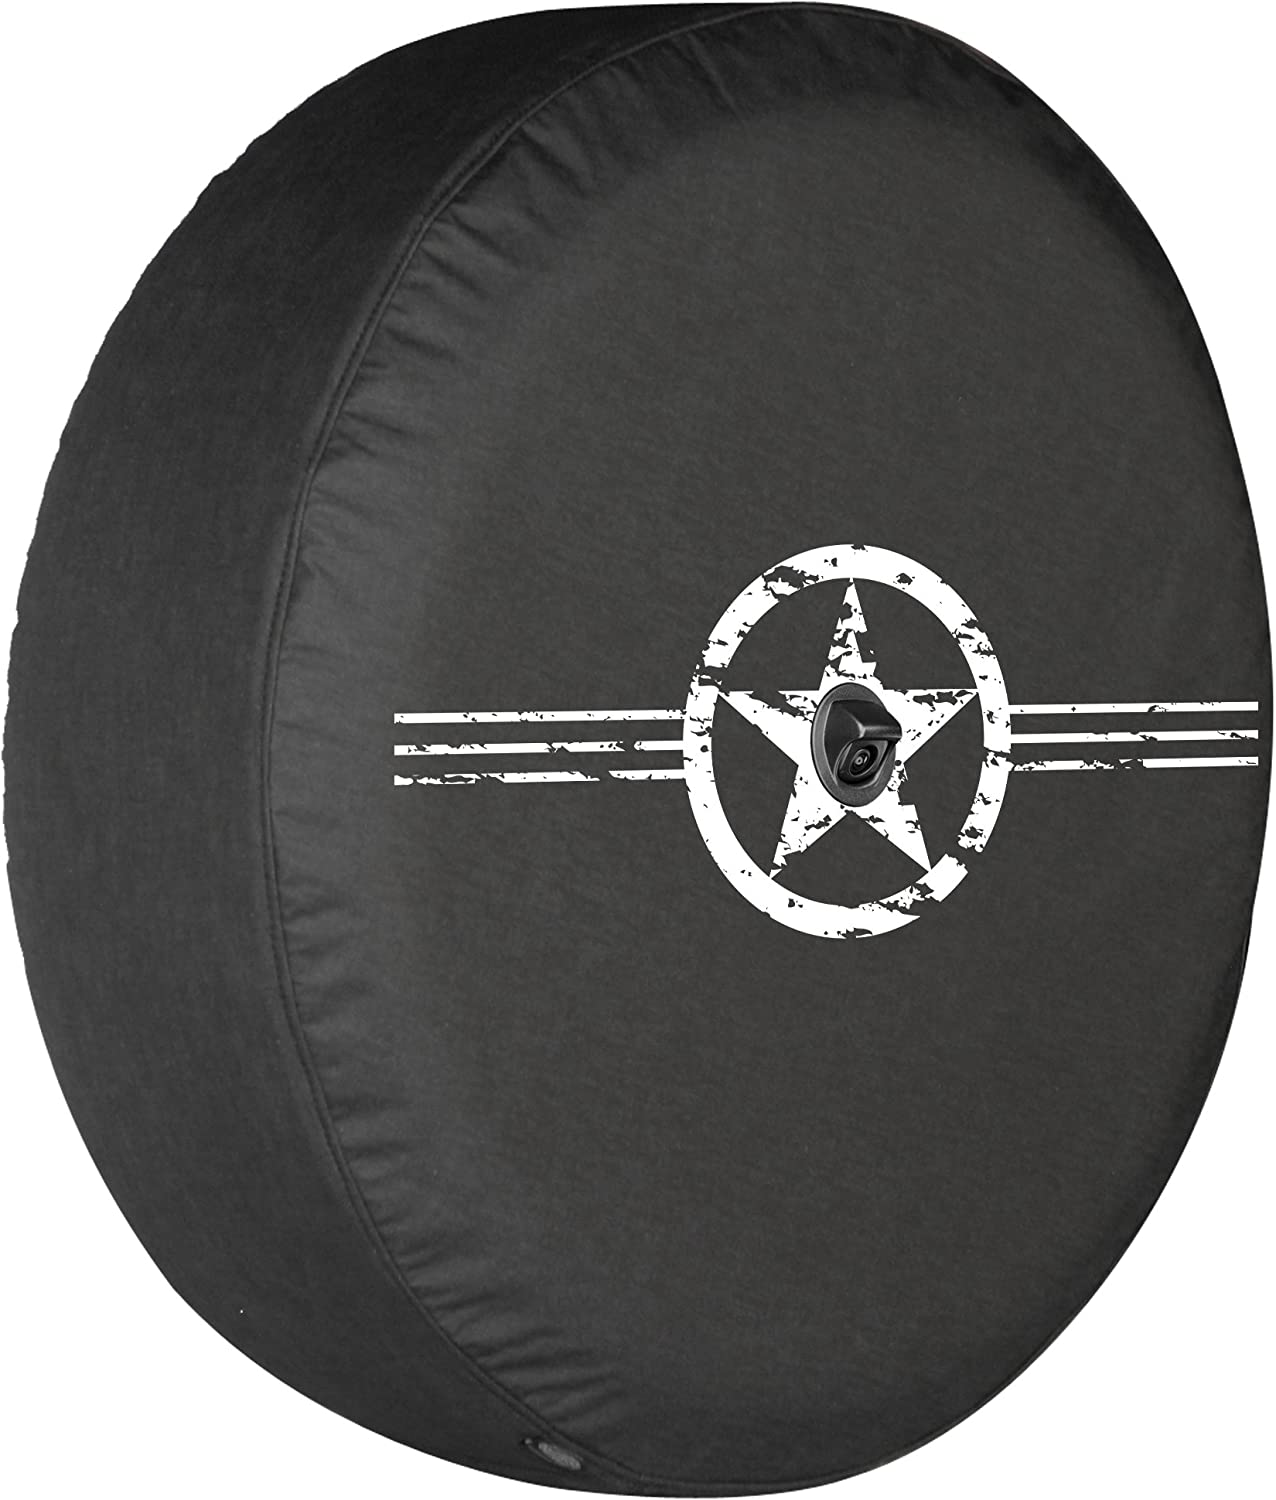 Boomerang with Back-up Camera 32 Soft JL Tire Cover for use with 2018-2019 Jeep Wrangler JL Sport /& Sahara - Air Force Star